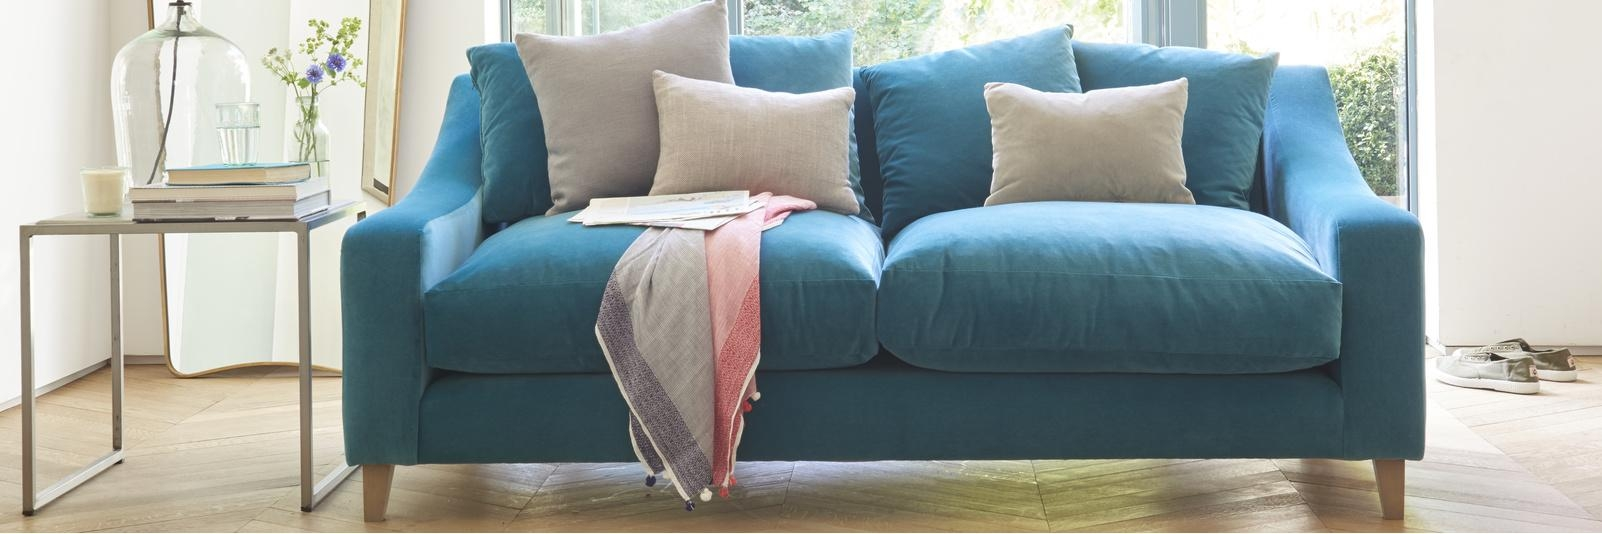 Sofas : Wonderful Small Corner Sofa Red Two Seater Sofa Small Two With Regard To 2X2 Corner Sofas (View 21 of 21)